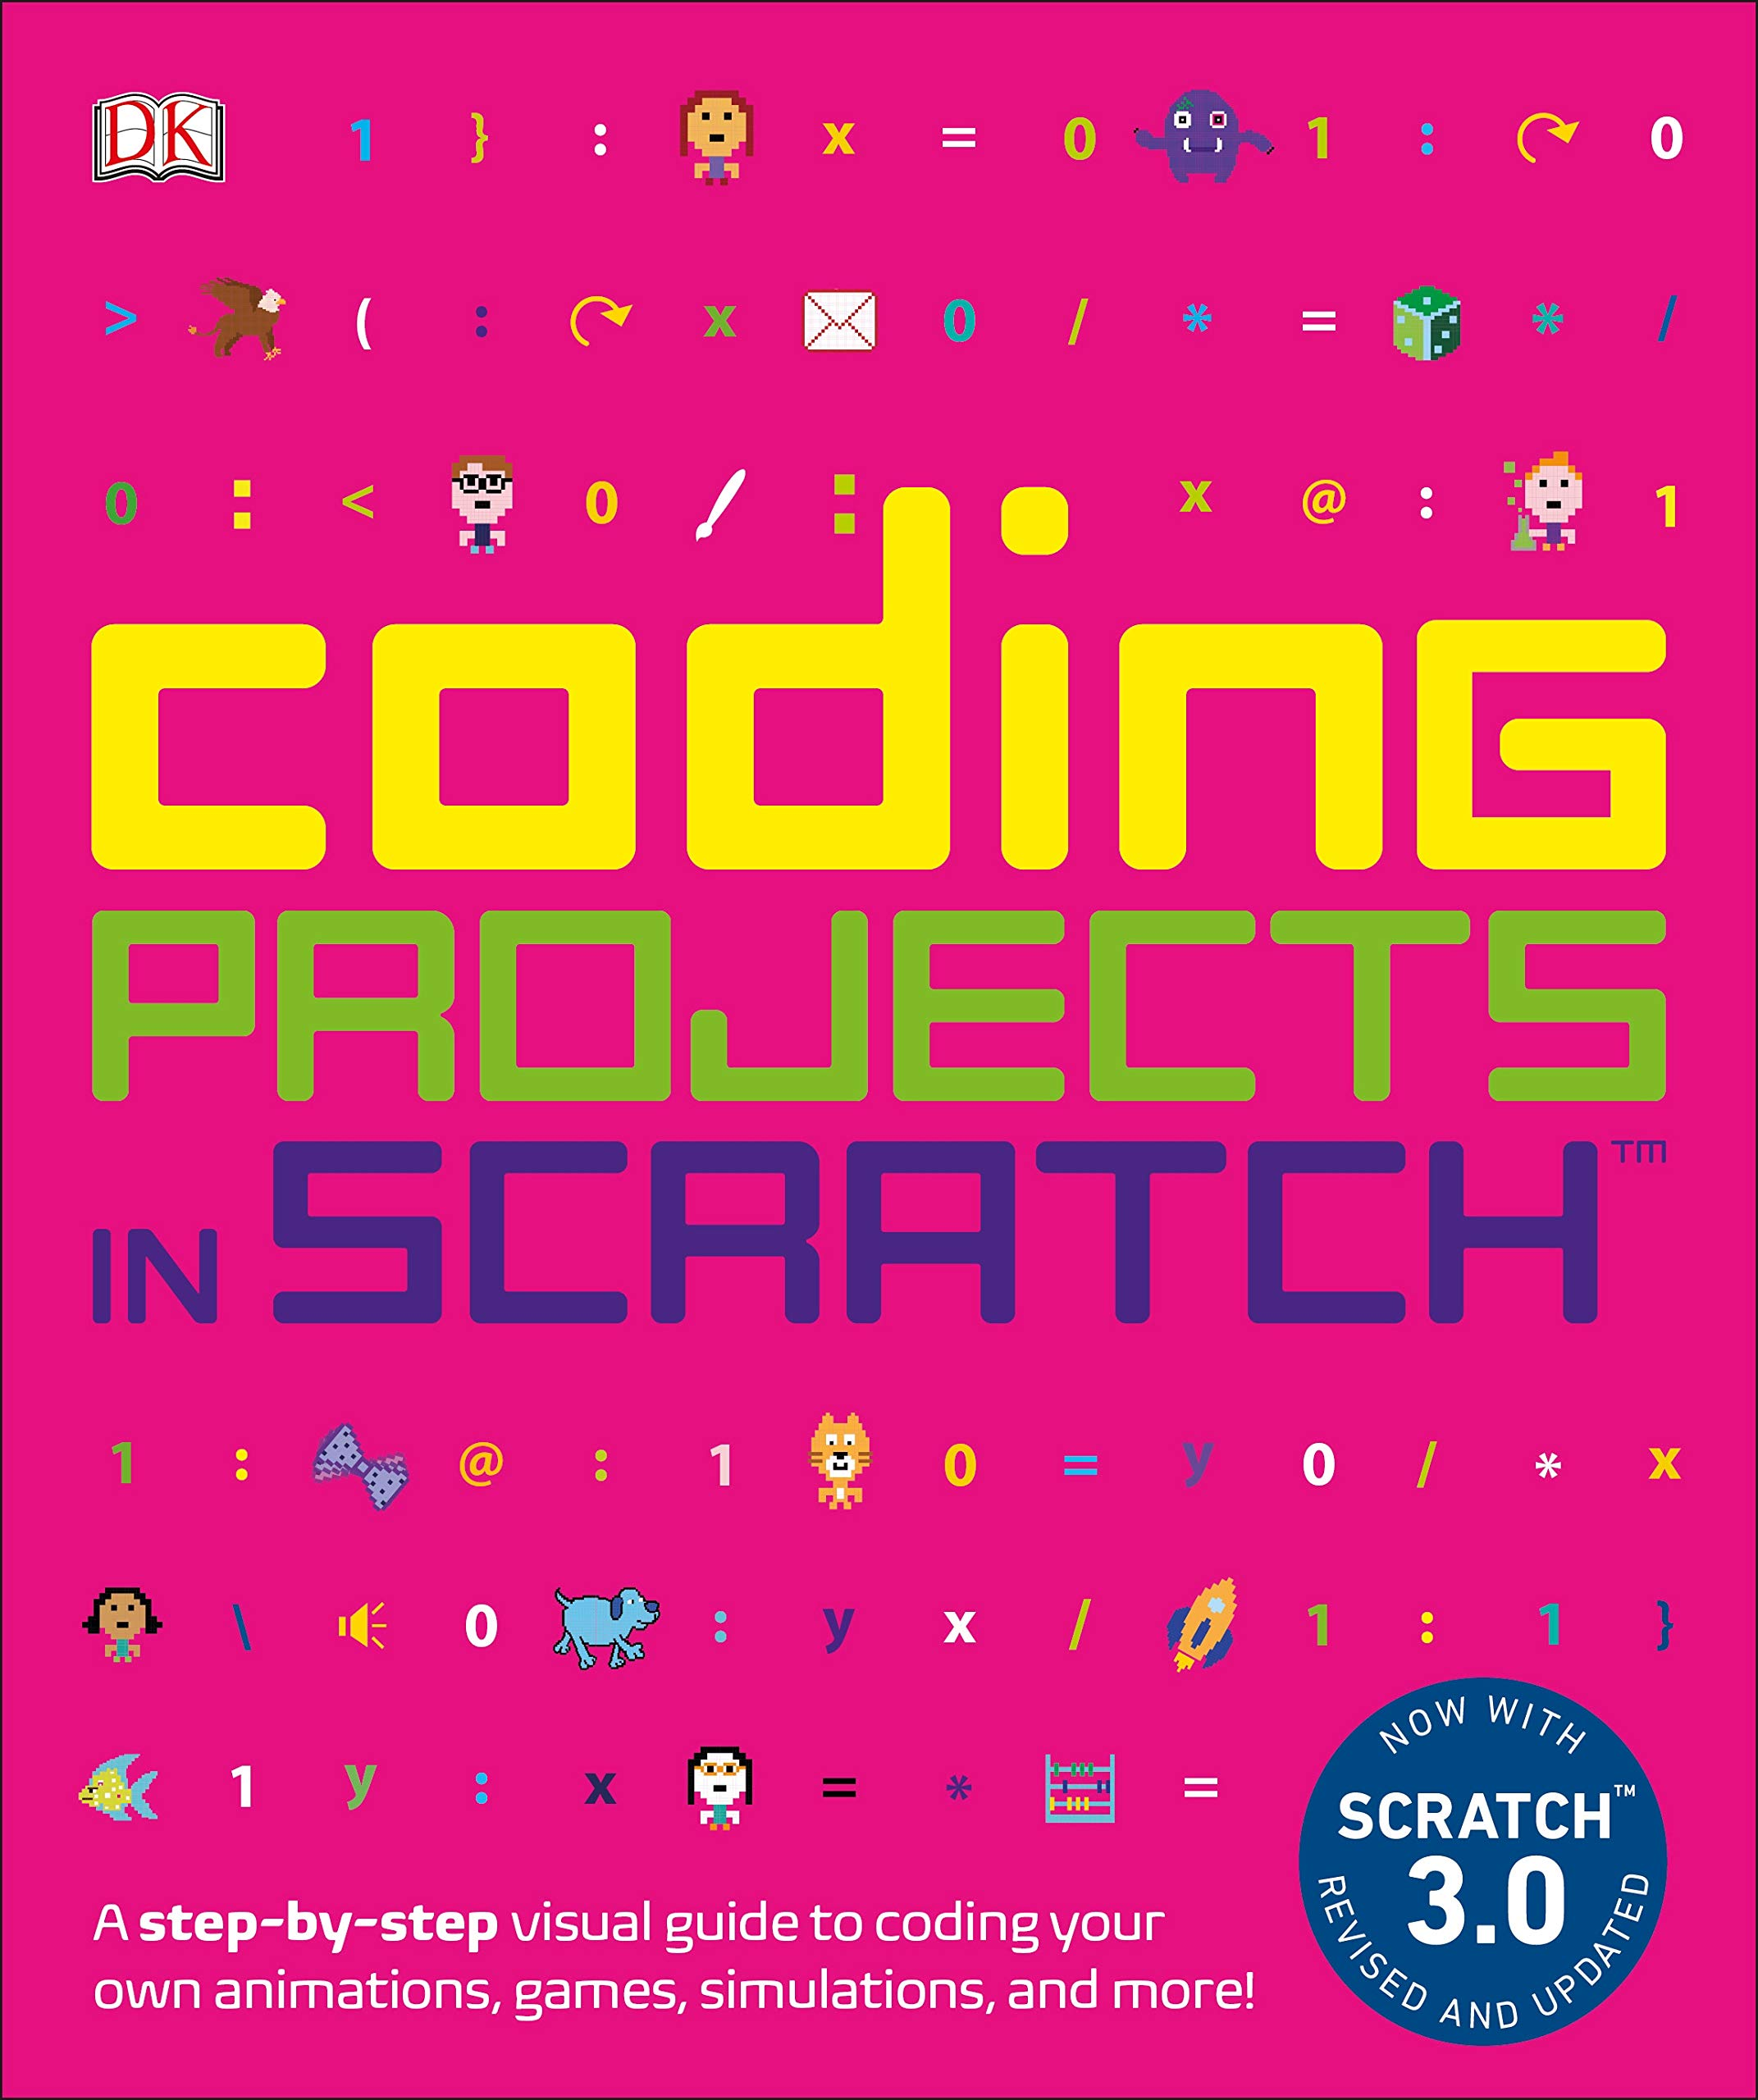 Coding Projects in Scratch: A Step-By-Step Visual Guide to Coding Your Own Animations Games Simulations a (Computer Coding for Kids)